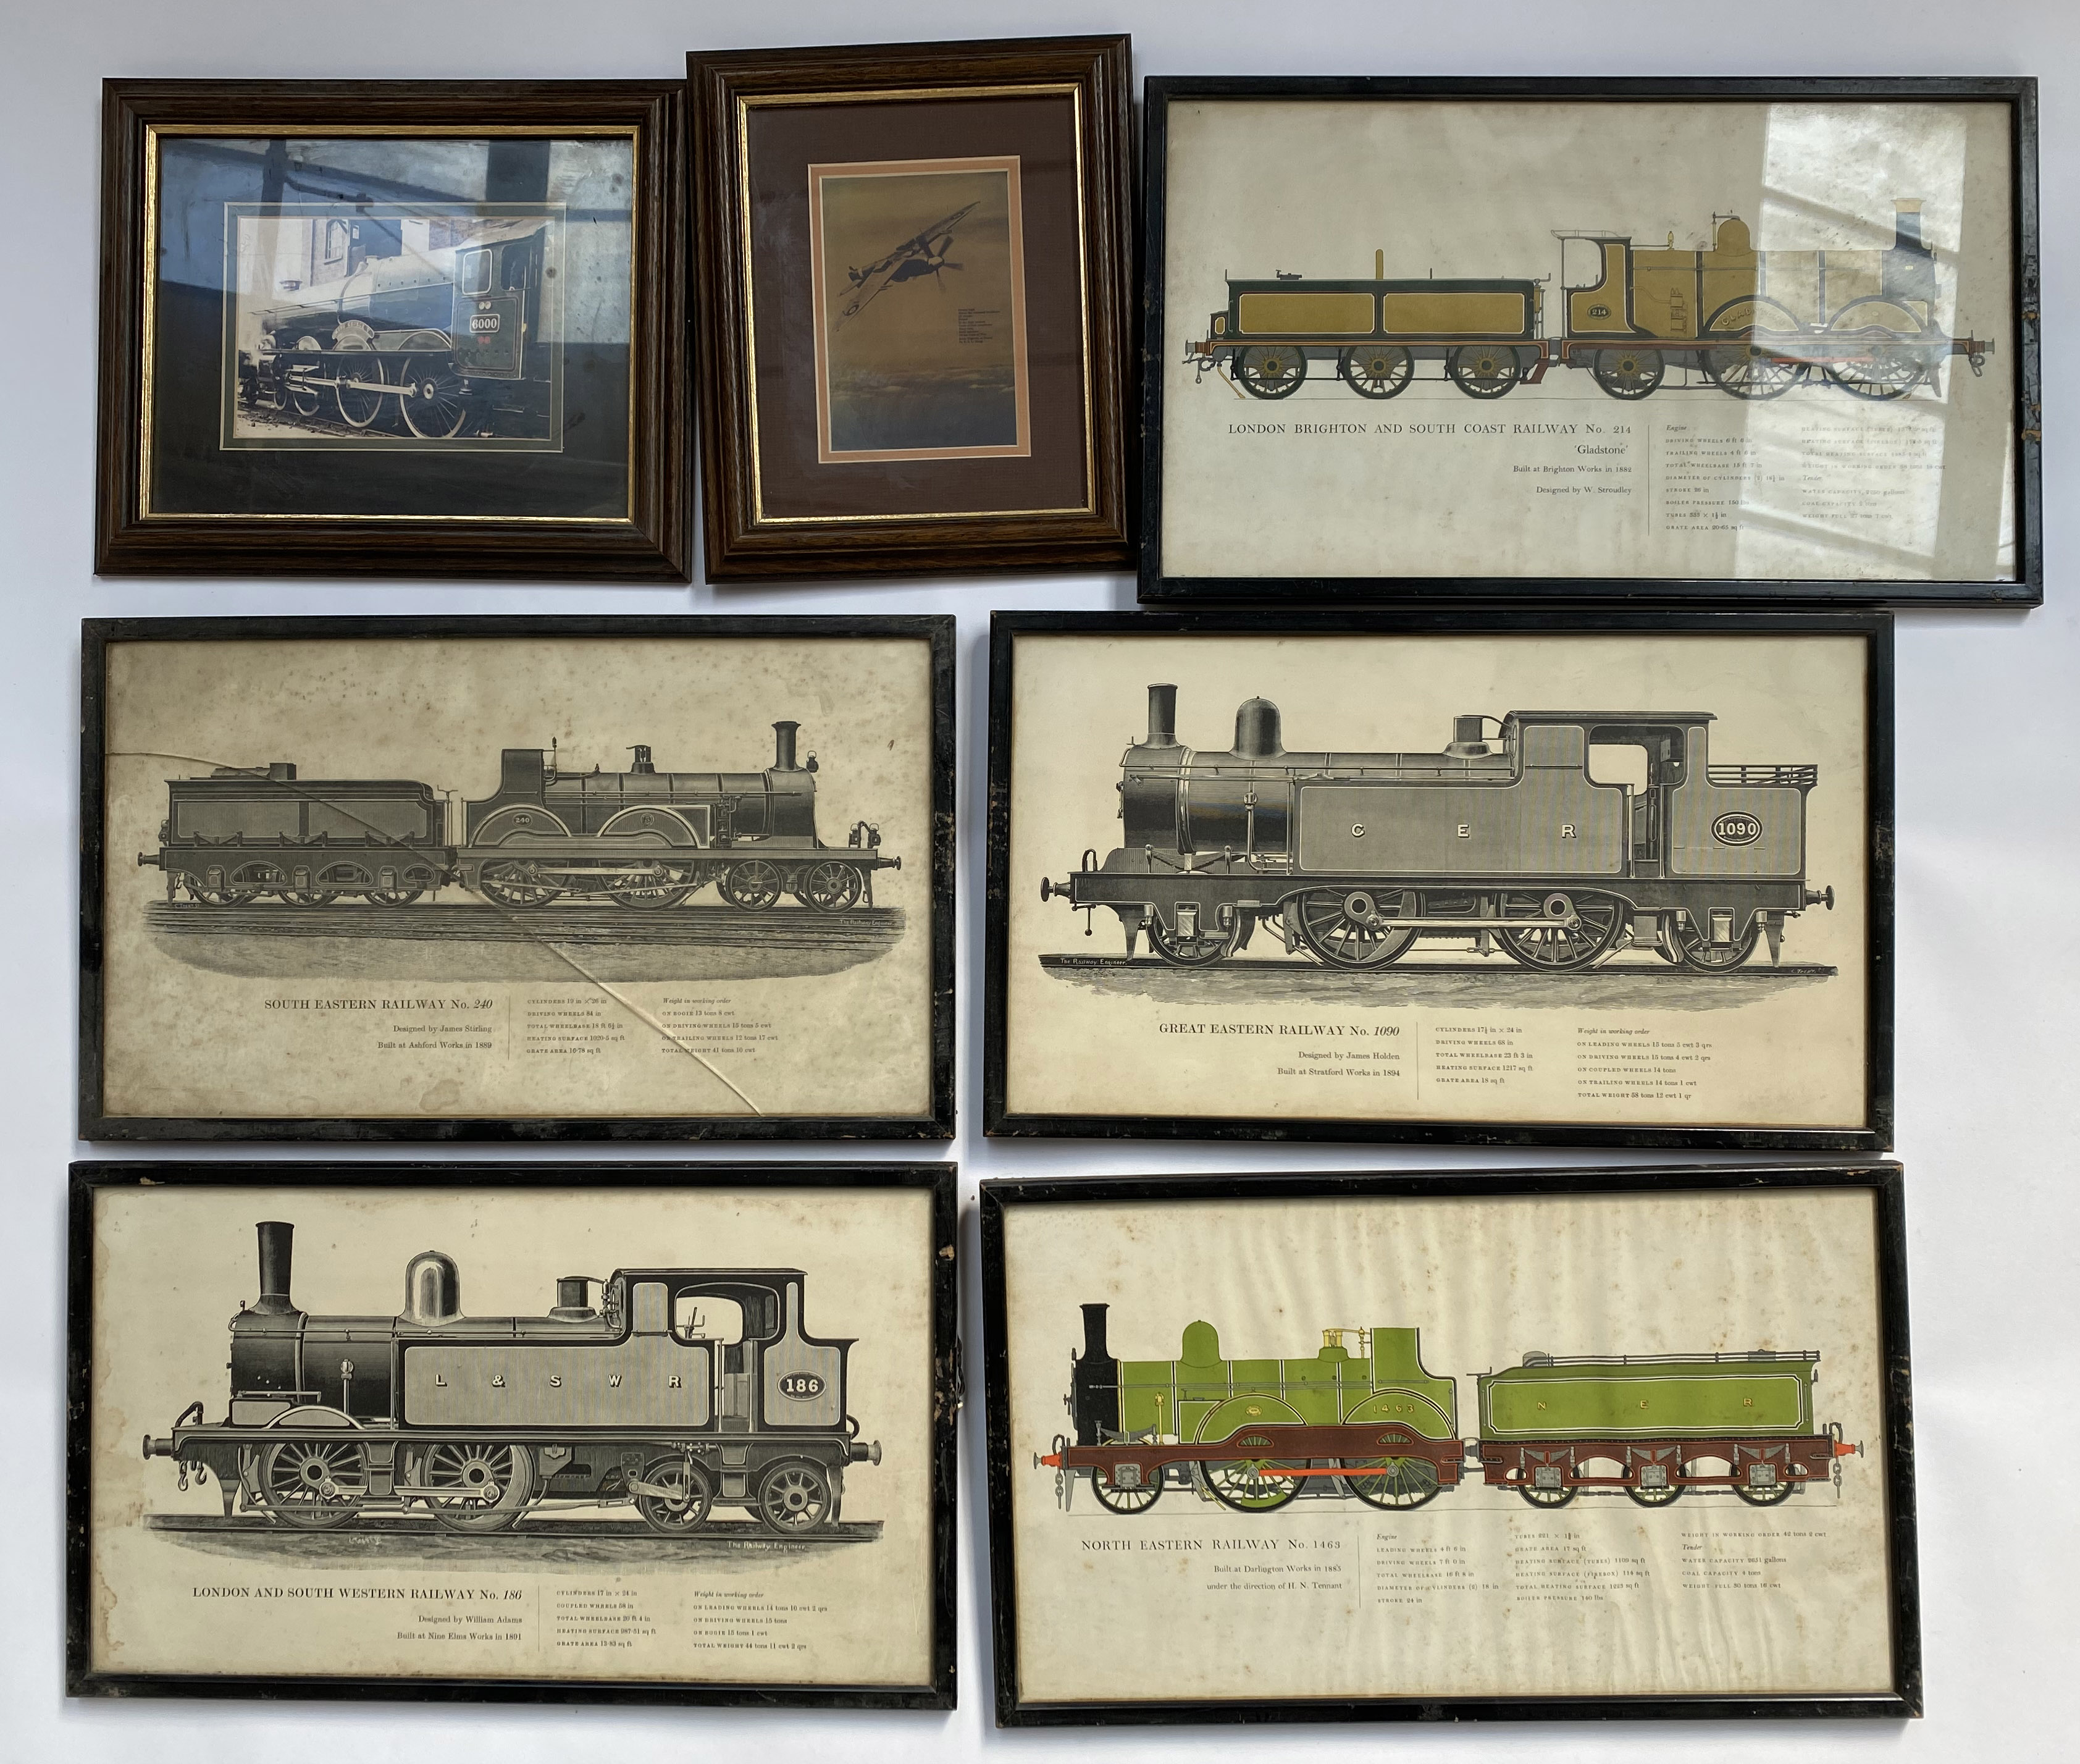 Lot 441 - 7 framed railway-related prints.